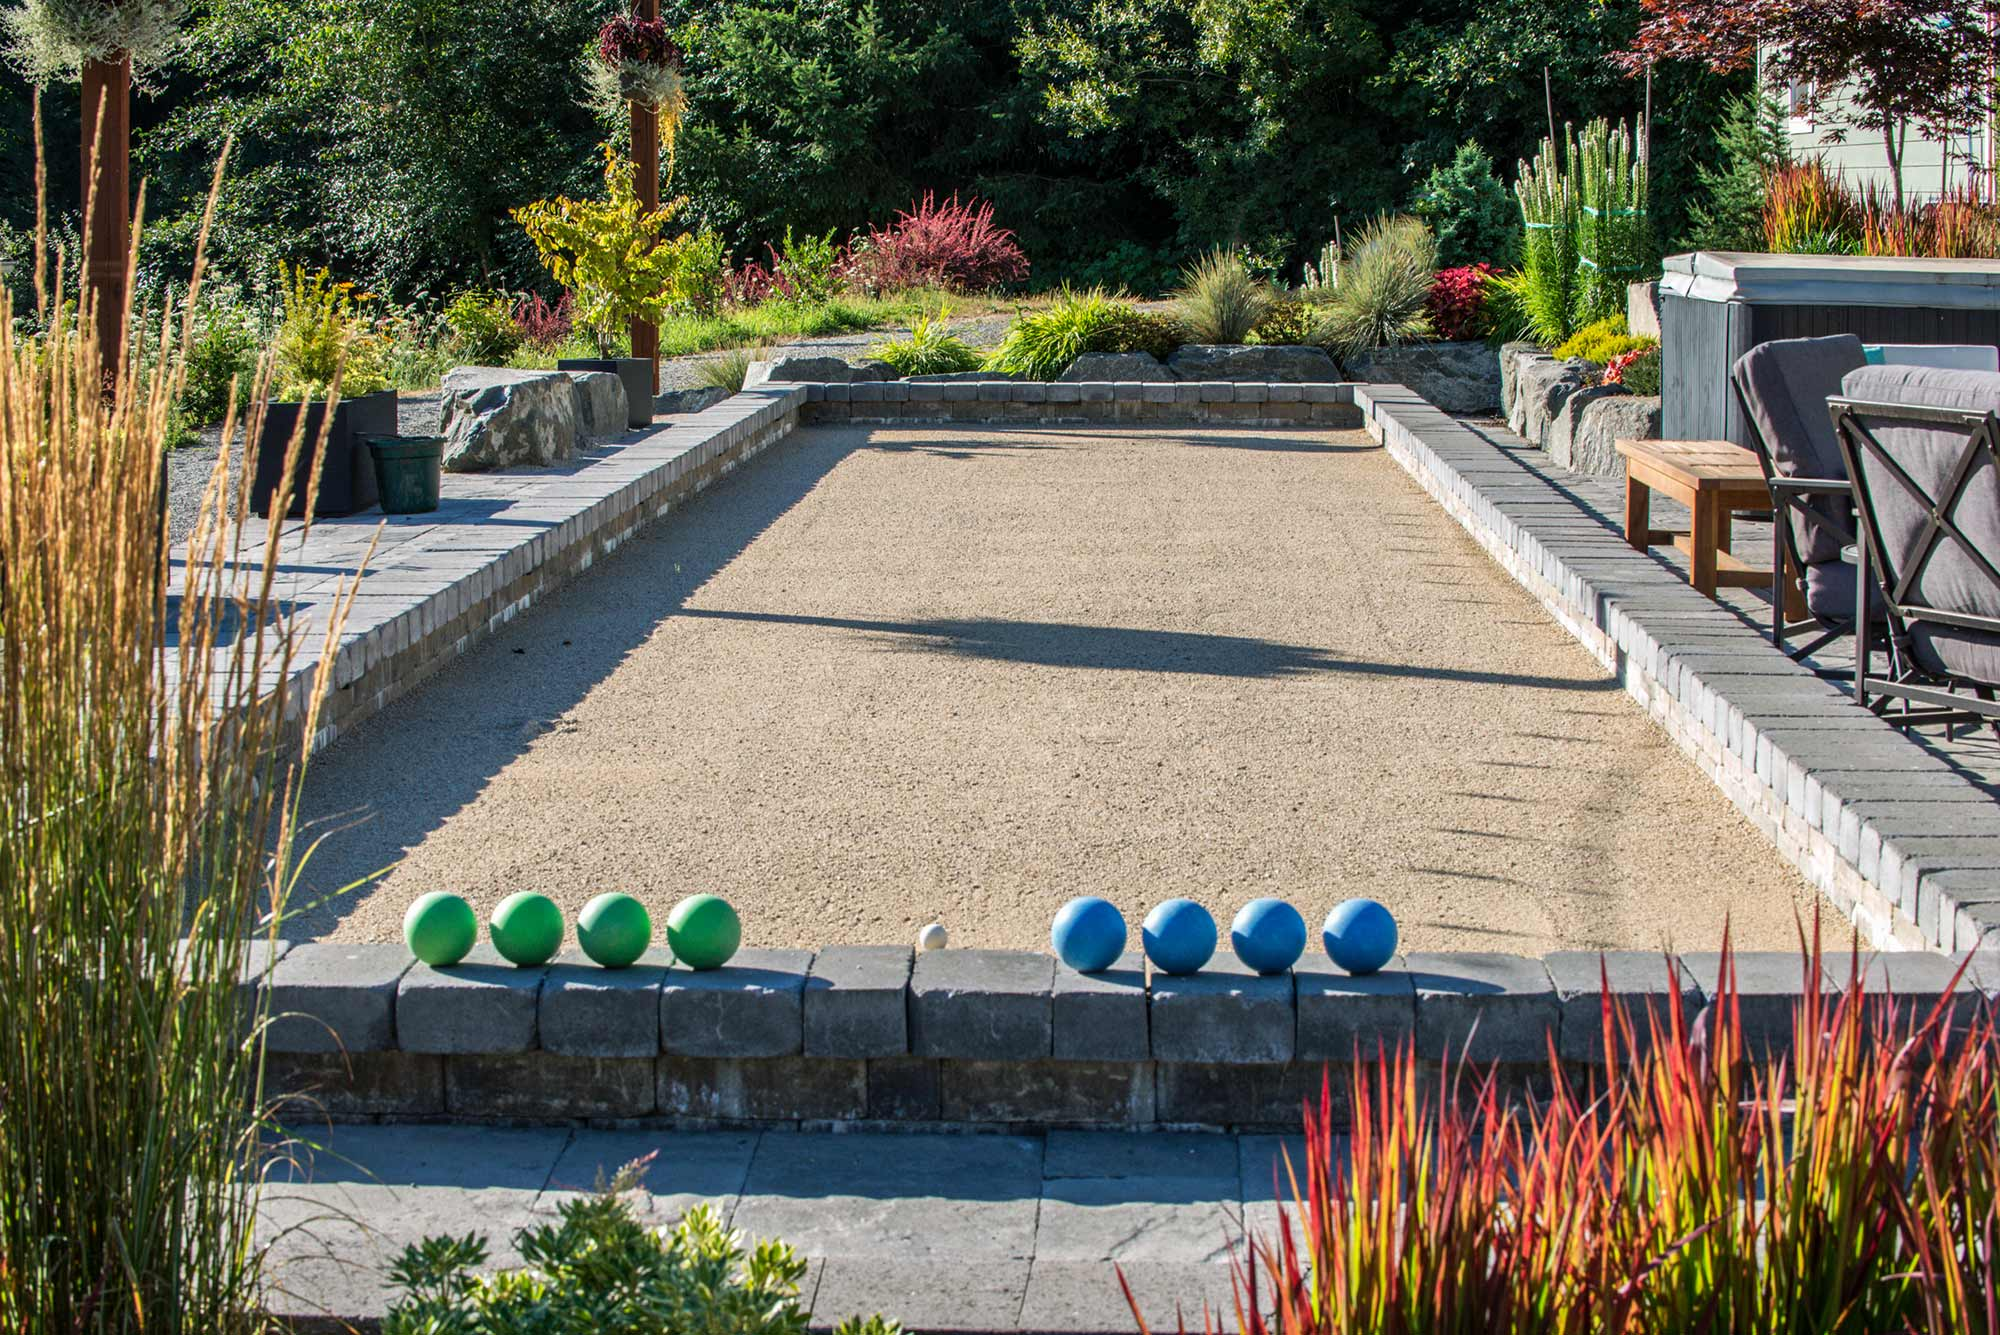 Olympica bocce ball court